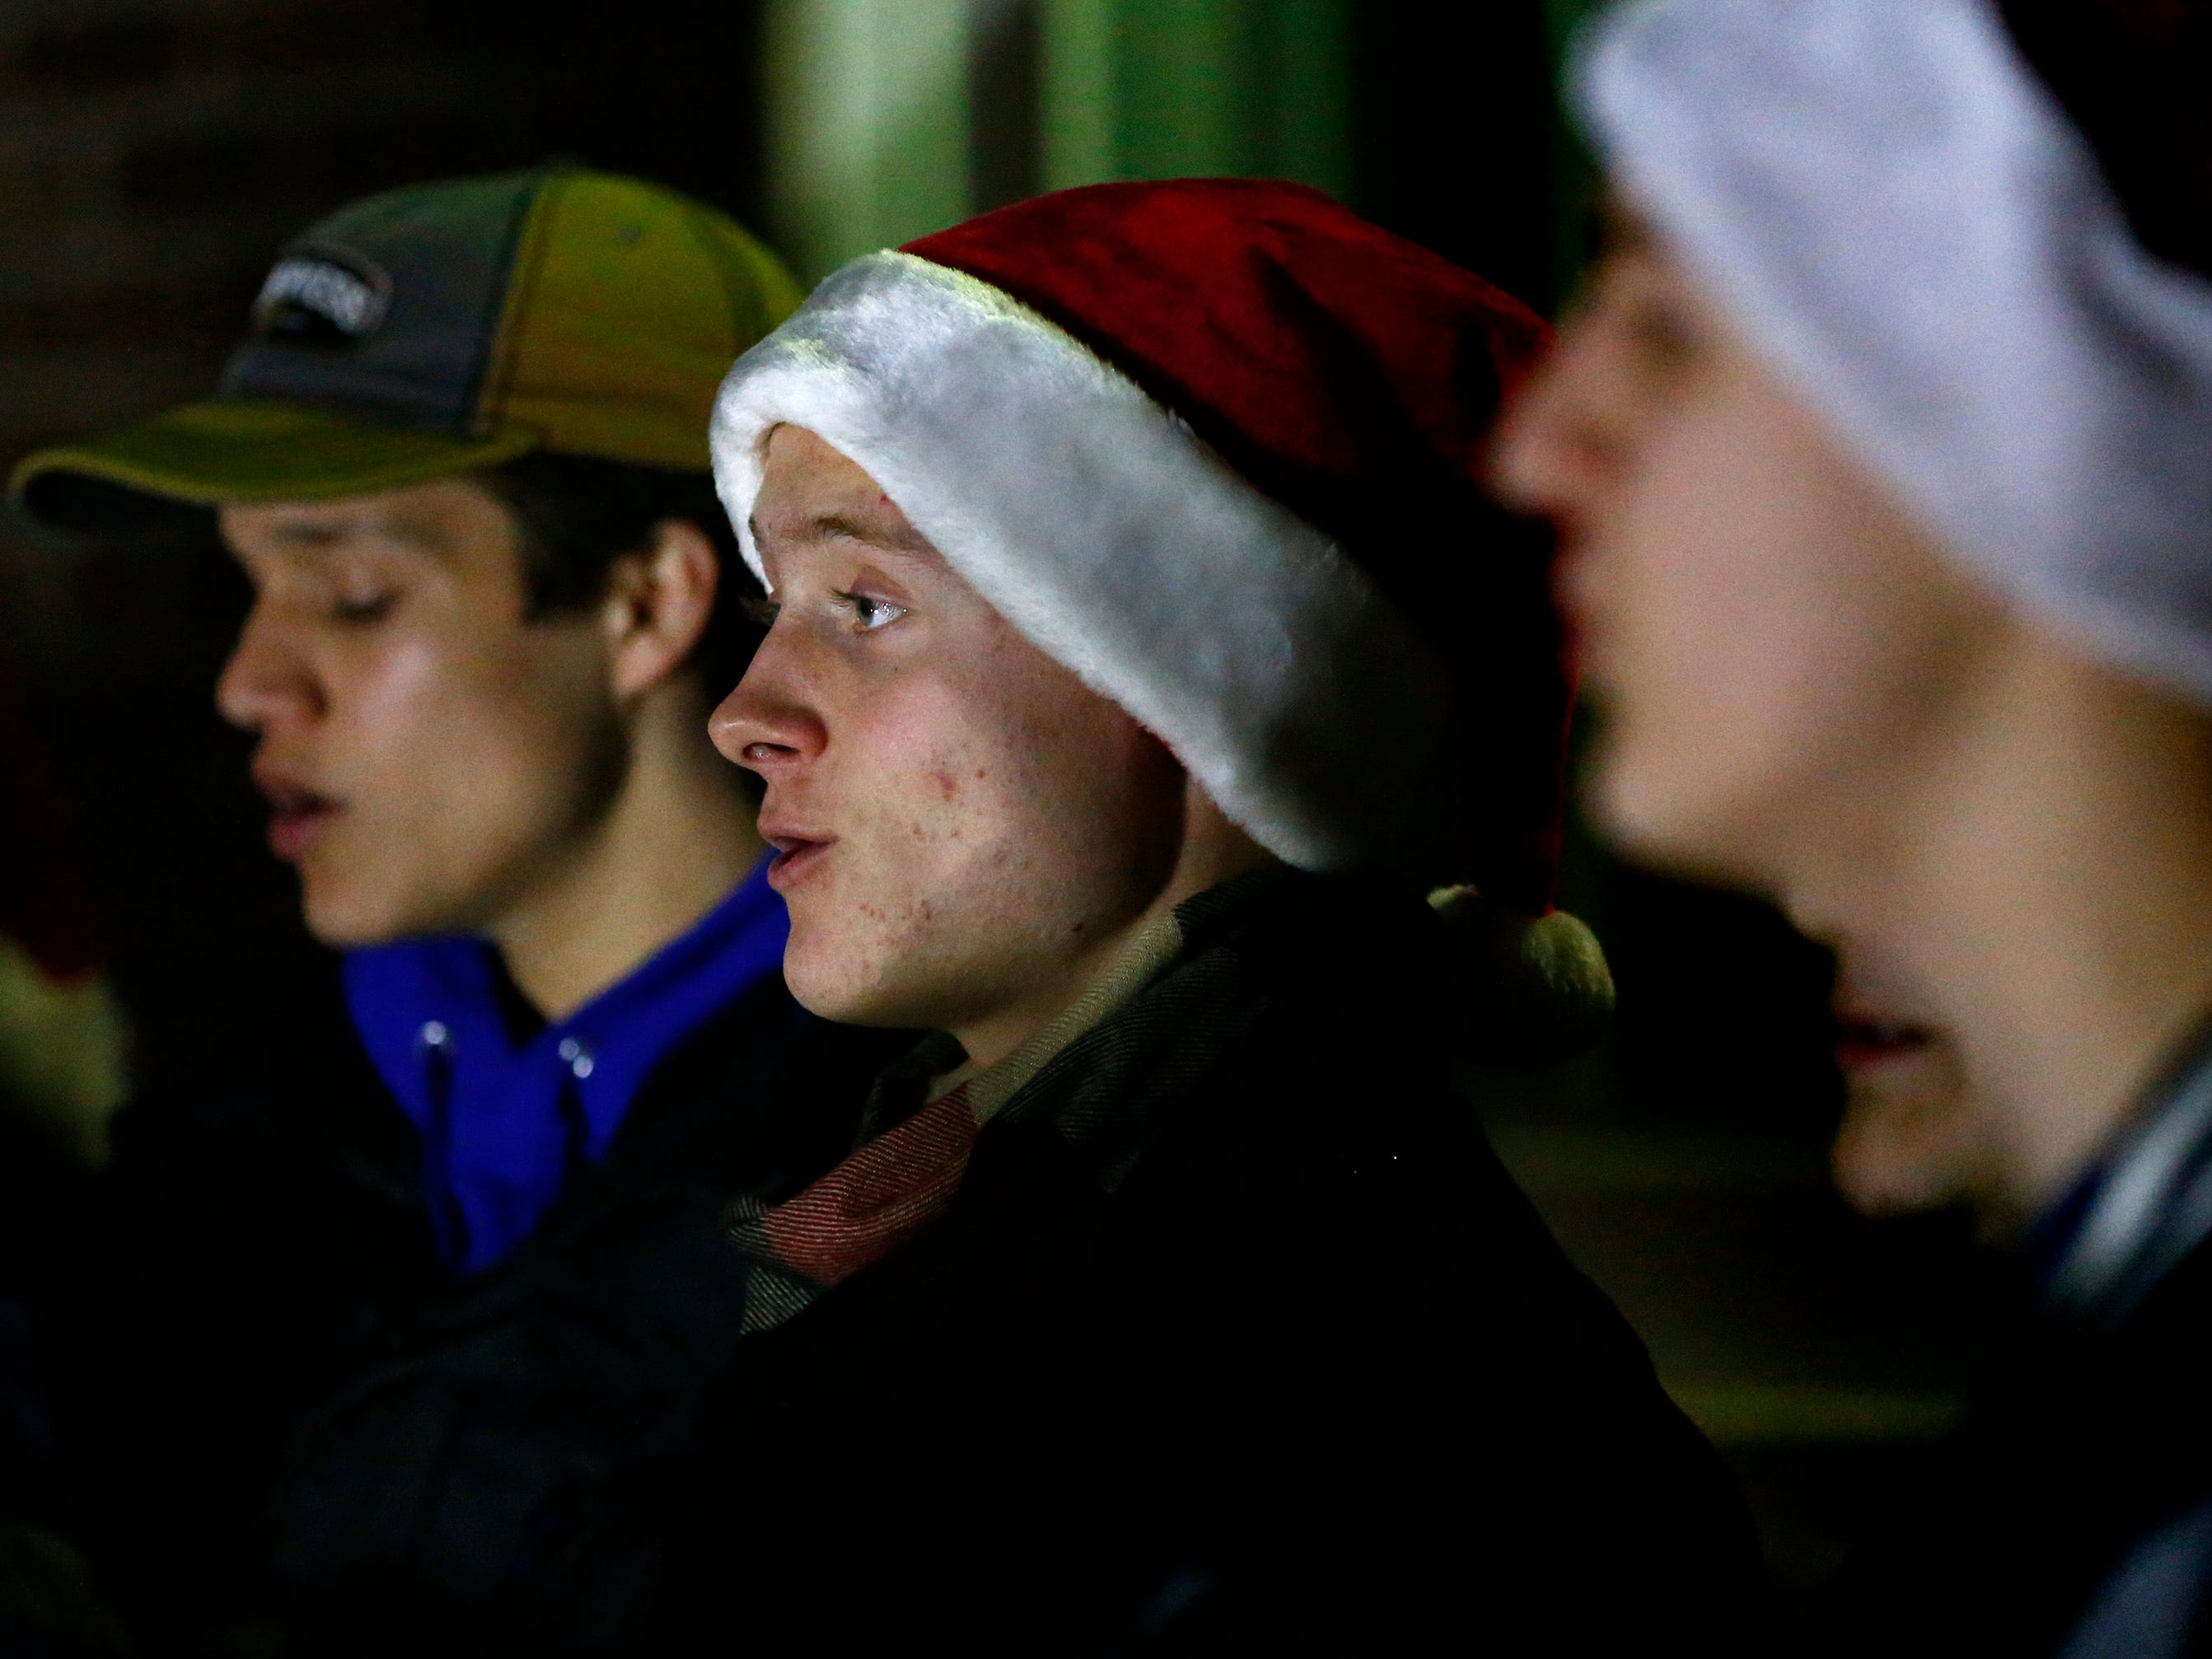 The Greendale High School Choir sings seasonal songs for the crowd waiting for thousands of lights to illuminate and for Santa to arrive as part of Greendale's annual Tree Lighting in front of Village Hall on Nov. 23.